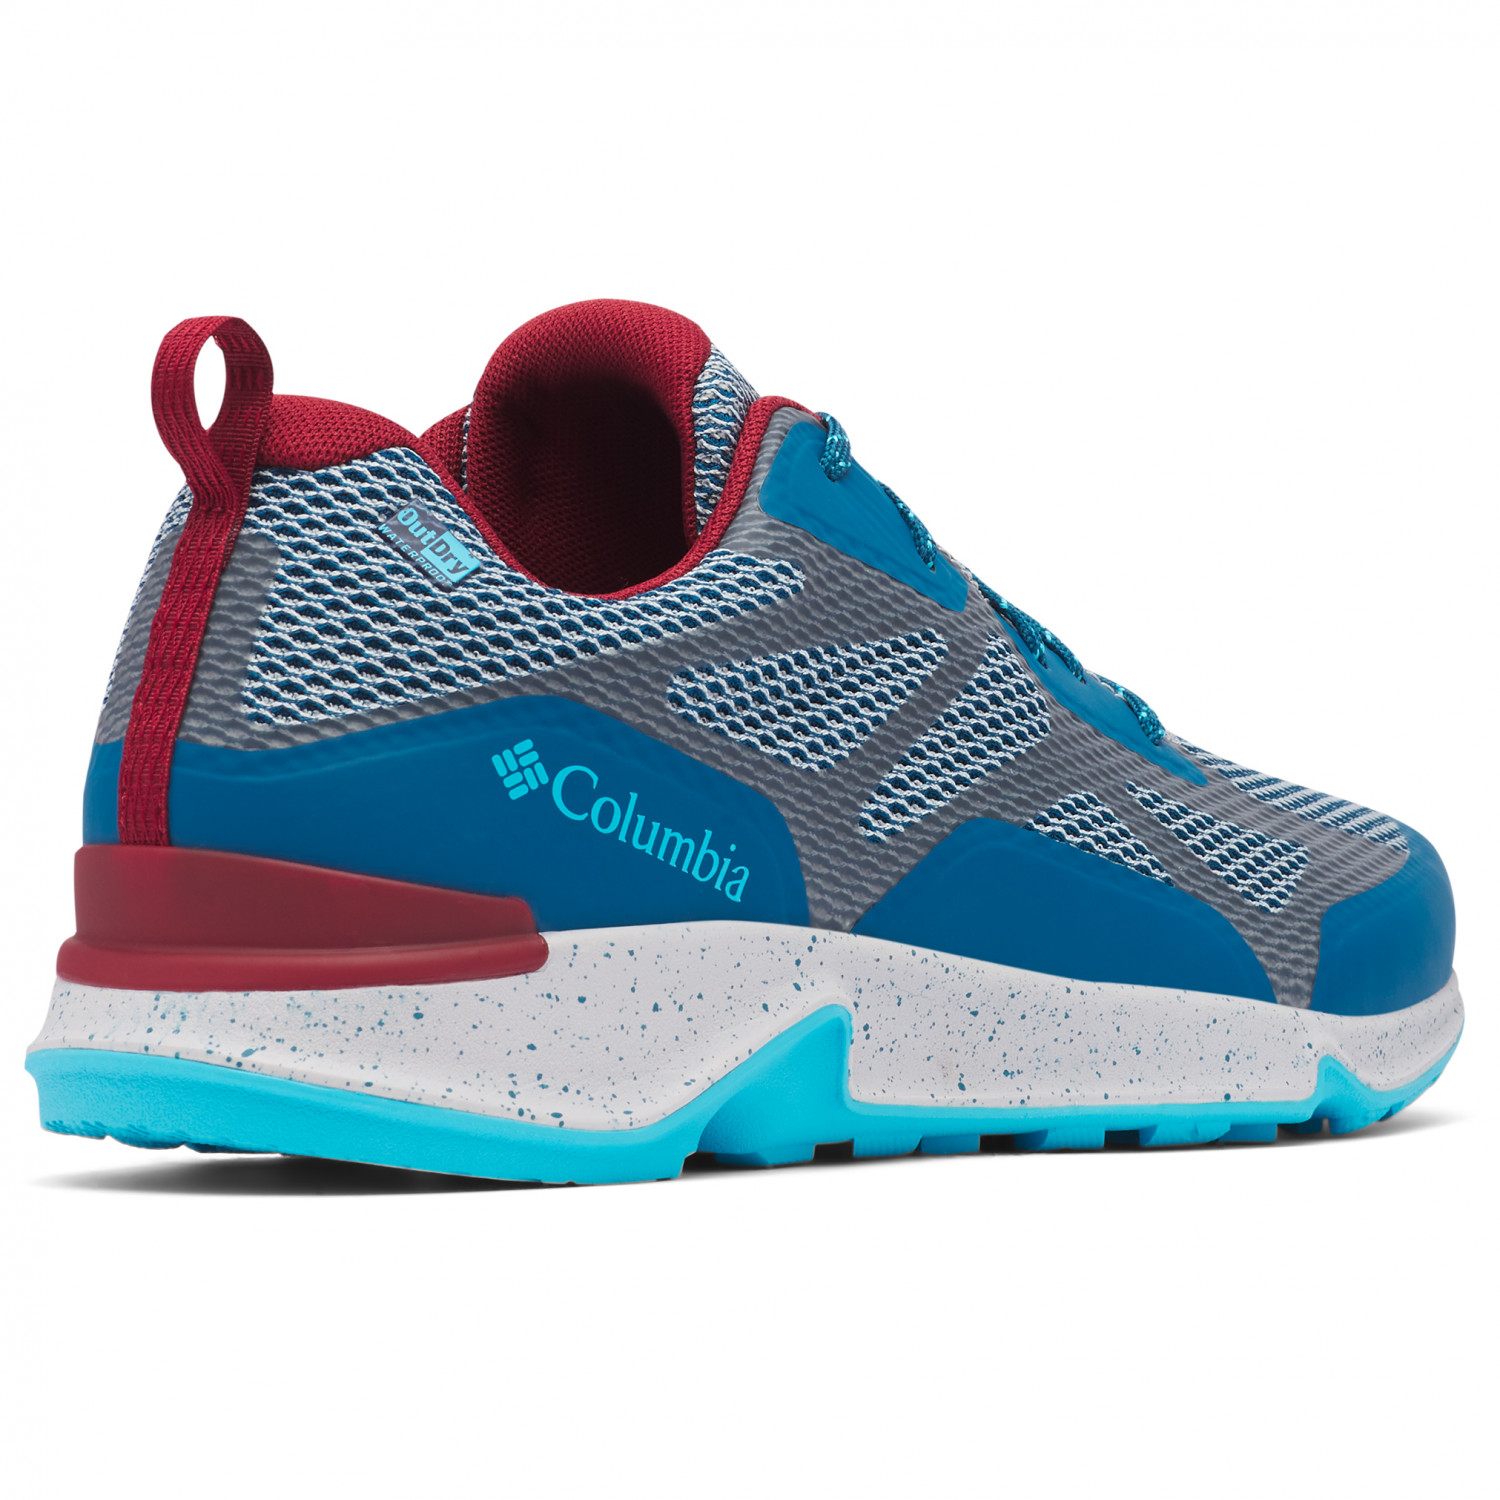 Columbia Vitesse Outdry Chaussures Multisports Homme